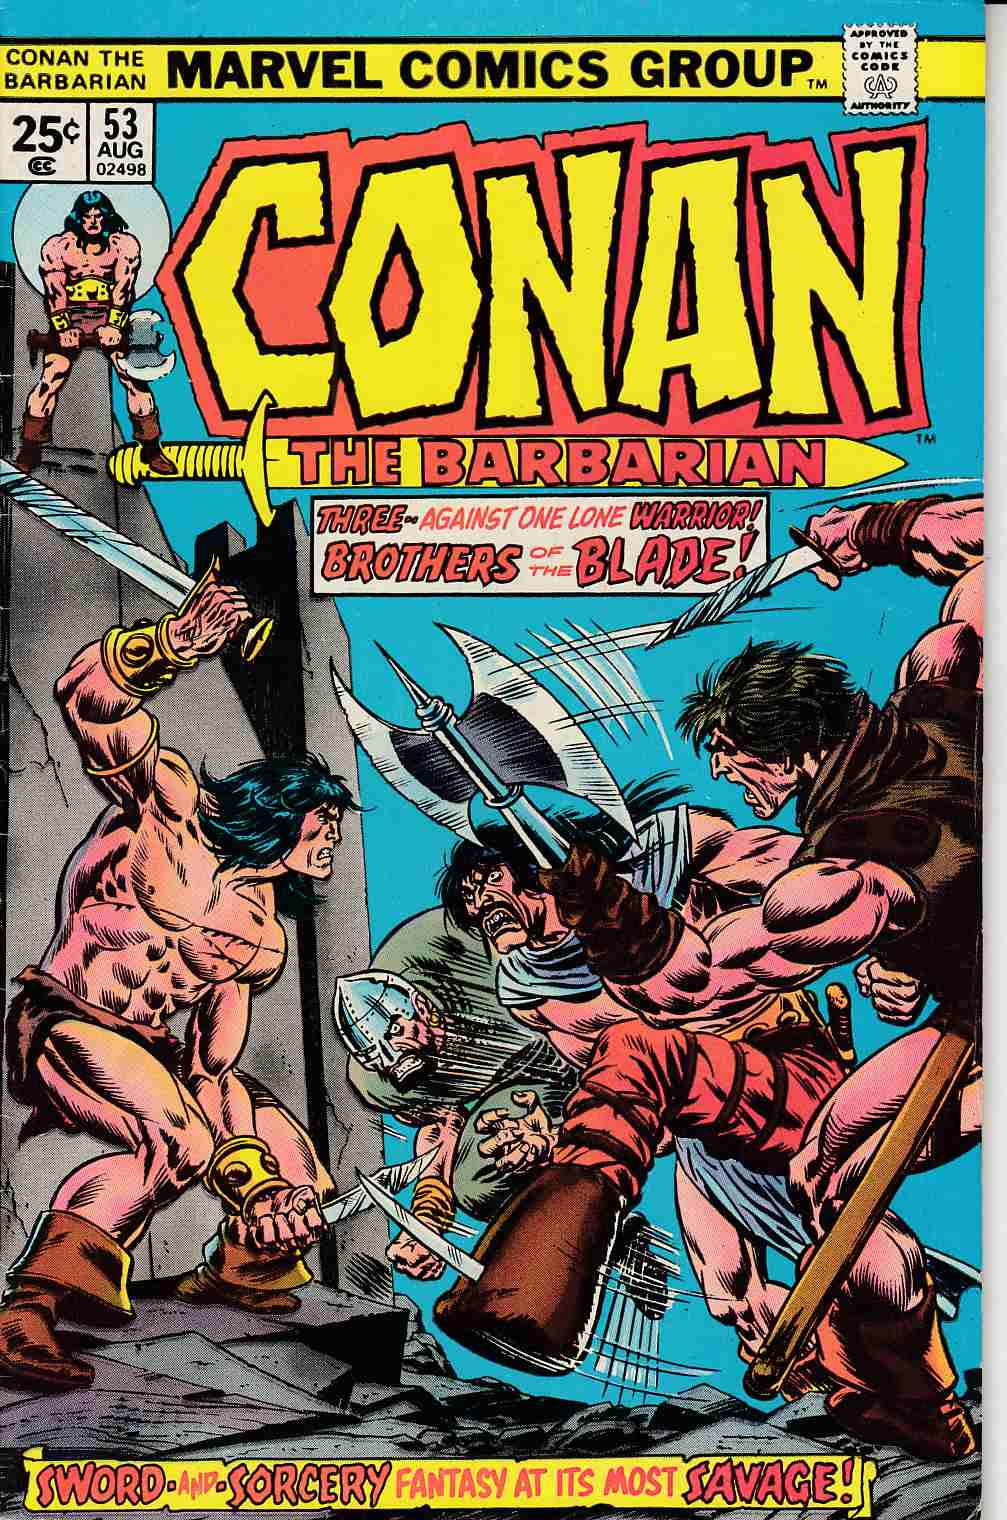 Conan the Barbarian #53 Very Fine Plus (8.5) [Marvel Comic] LARGE